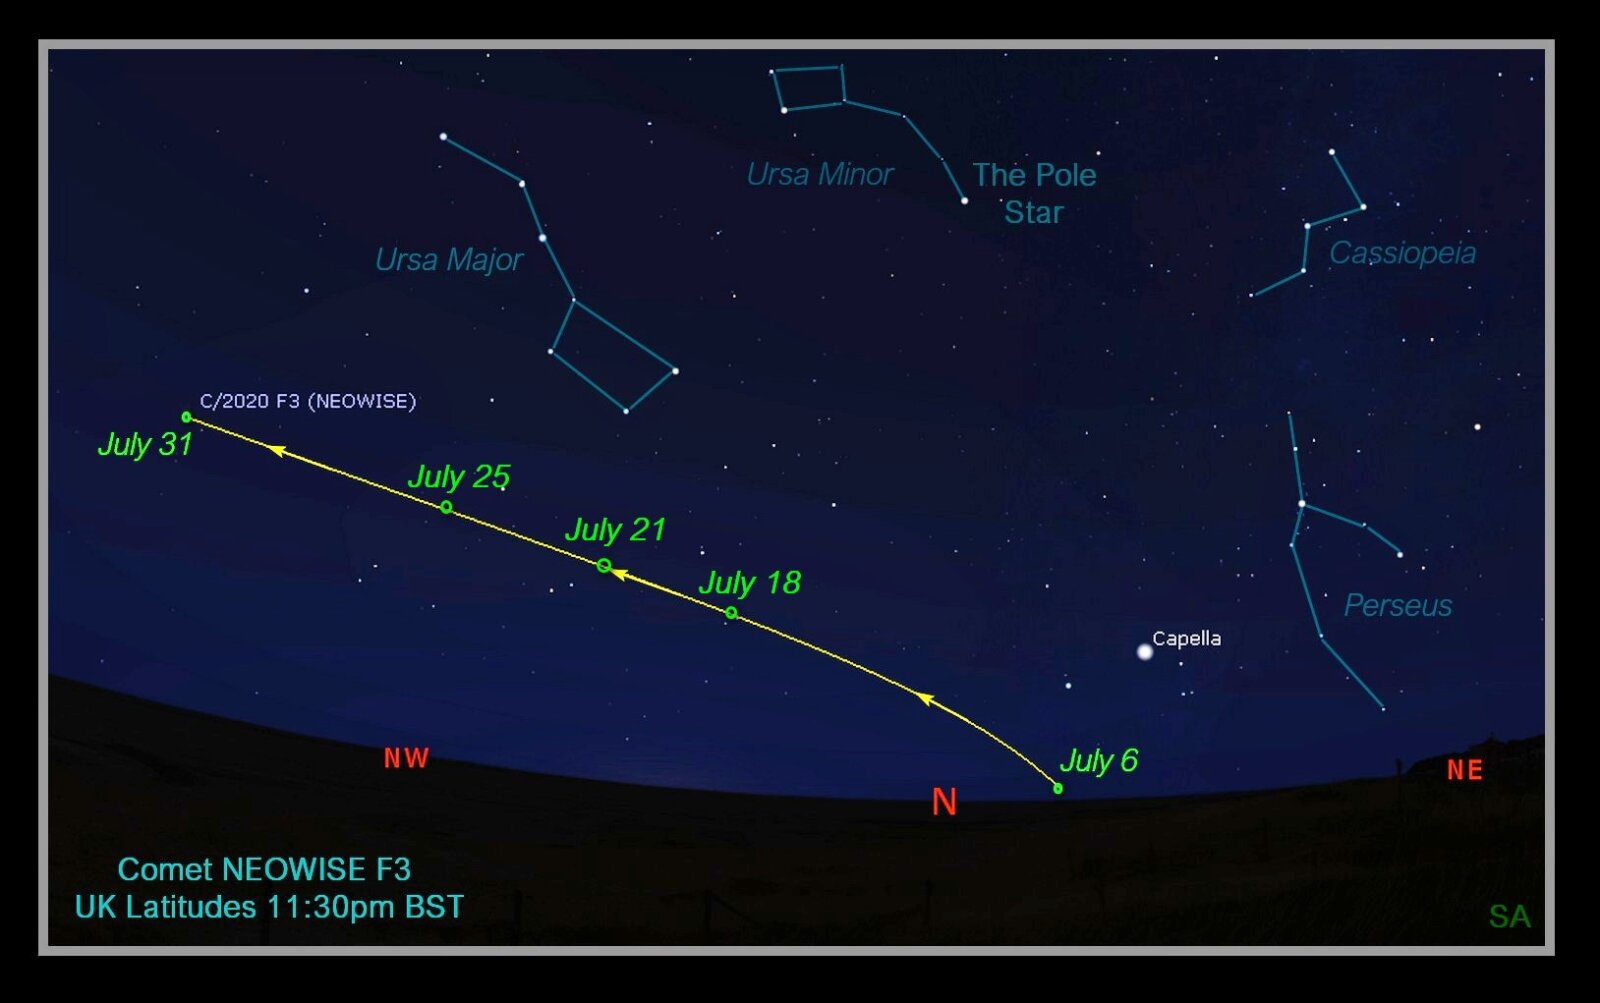 Comet Neowise will be visible in the night sky above the UK this month, The Manc